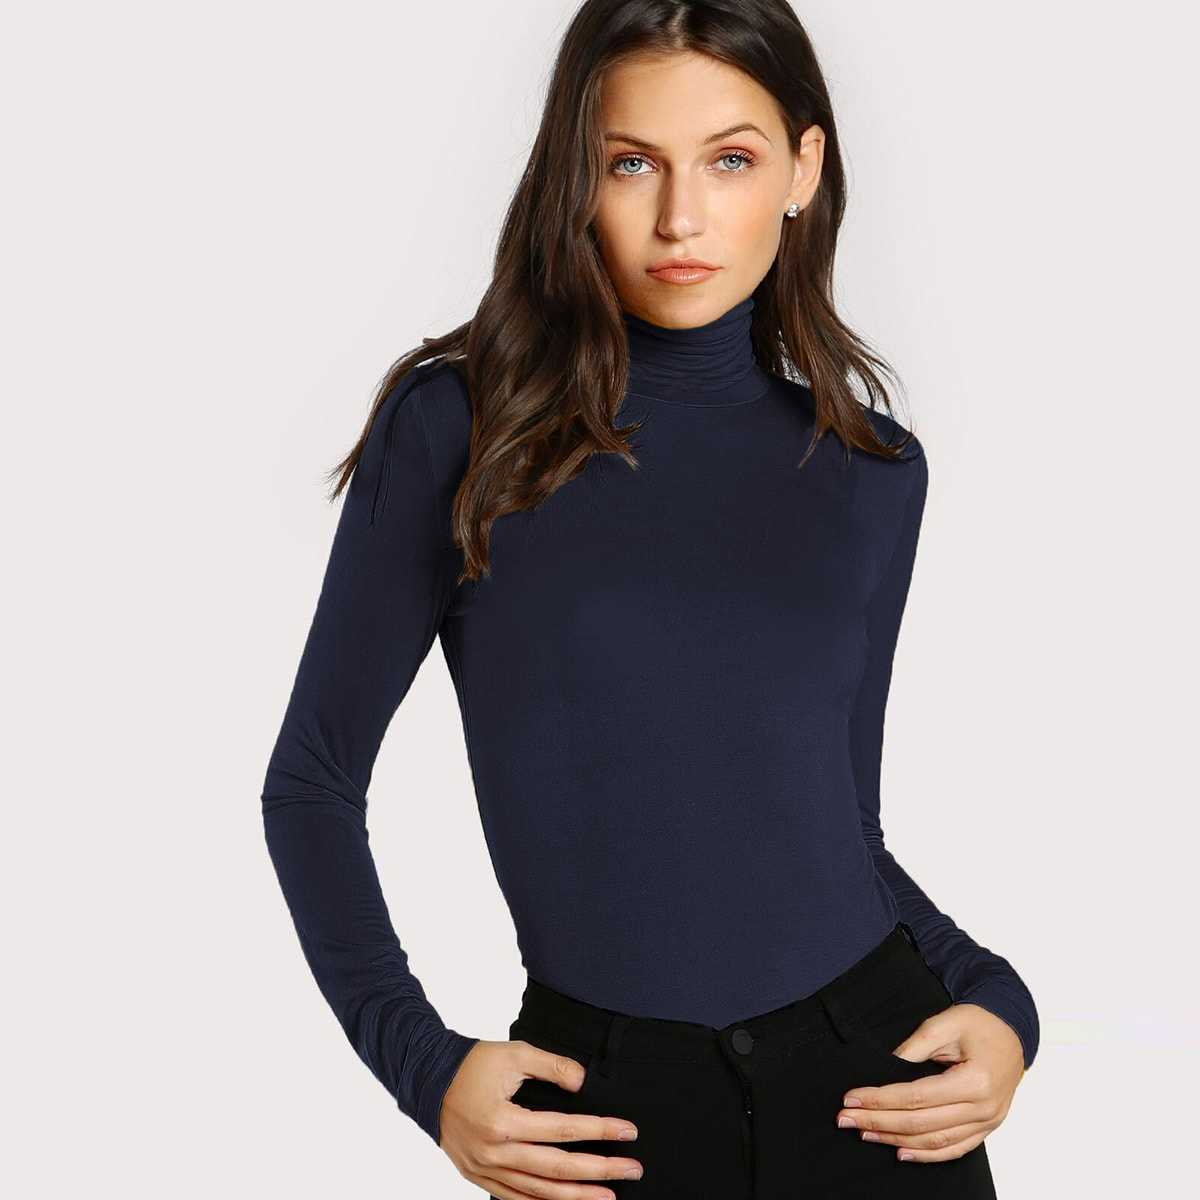 Turtleneck Slim Fit T-shirt in Navy by ROMWE on GOOFASH